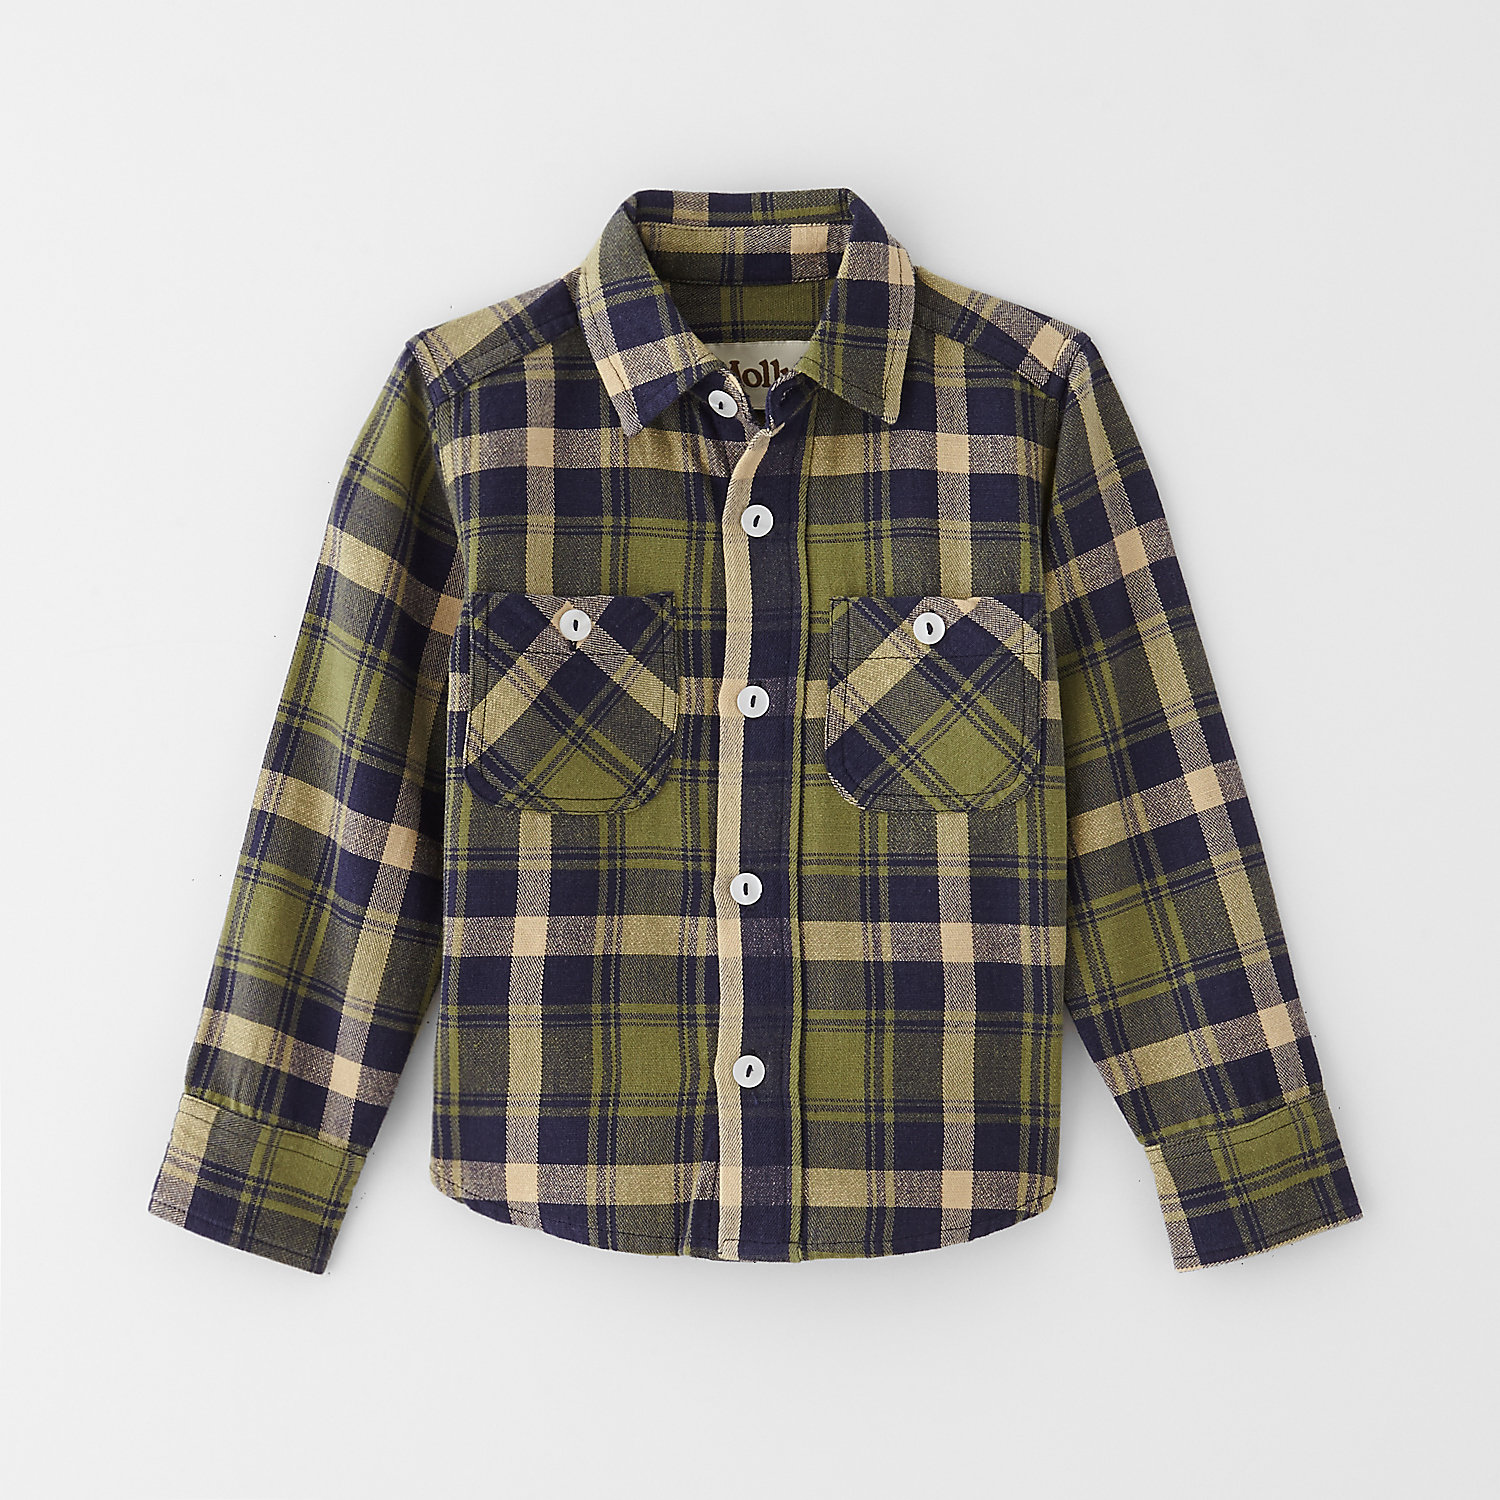 KIDS VINTAGE FLANNEL